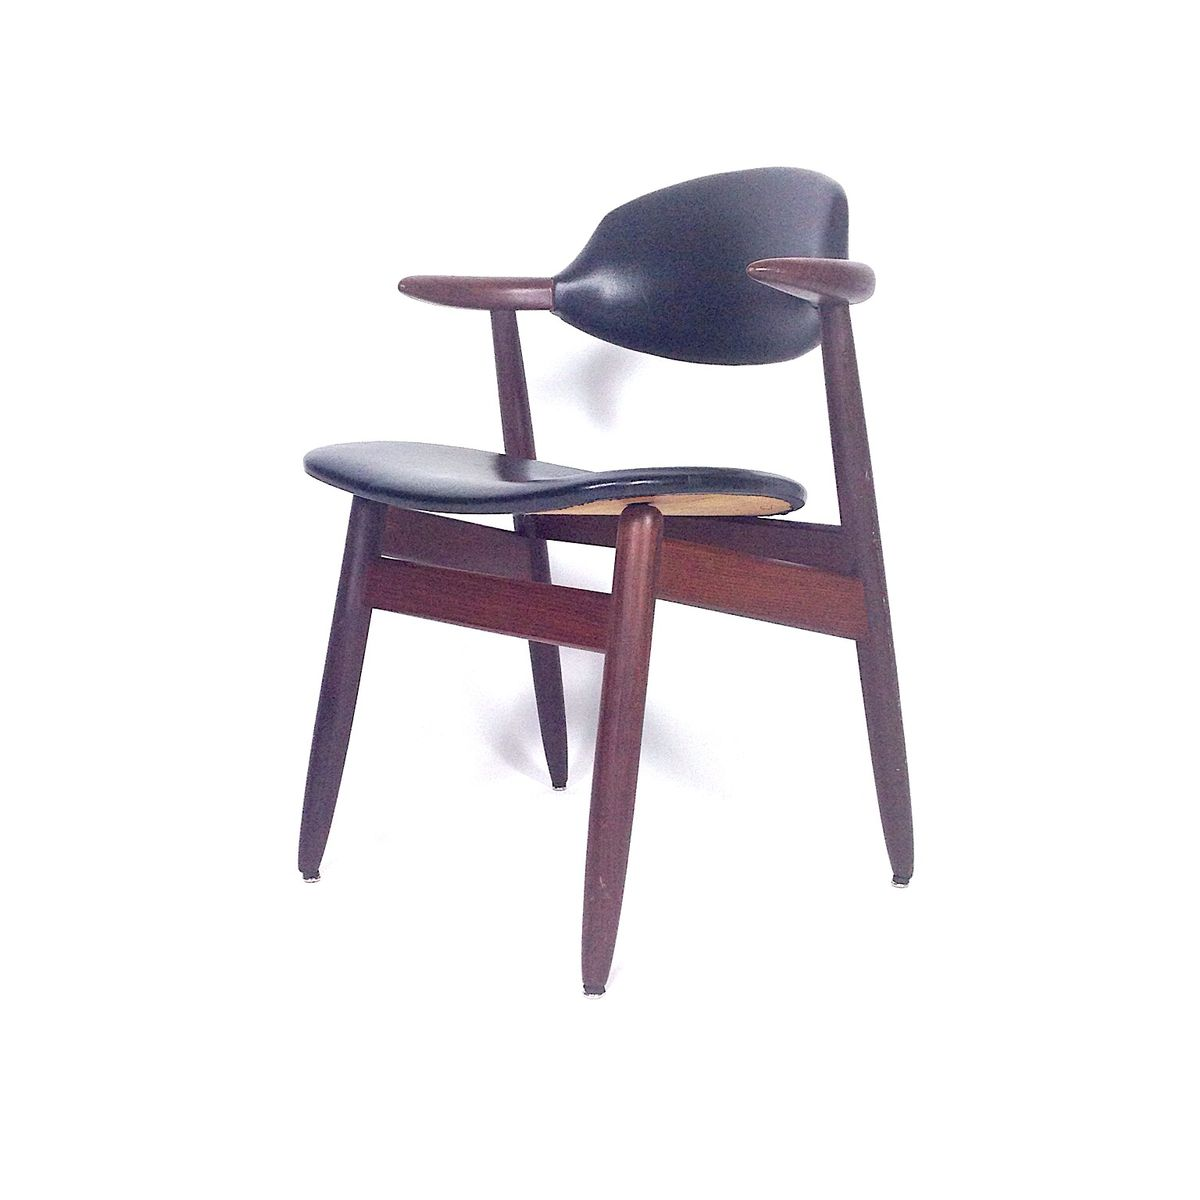 Cowhorn Dining Chairs By Tijsseling For Hulmefa Set Of 4 For Sale At Pamono